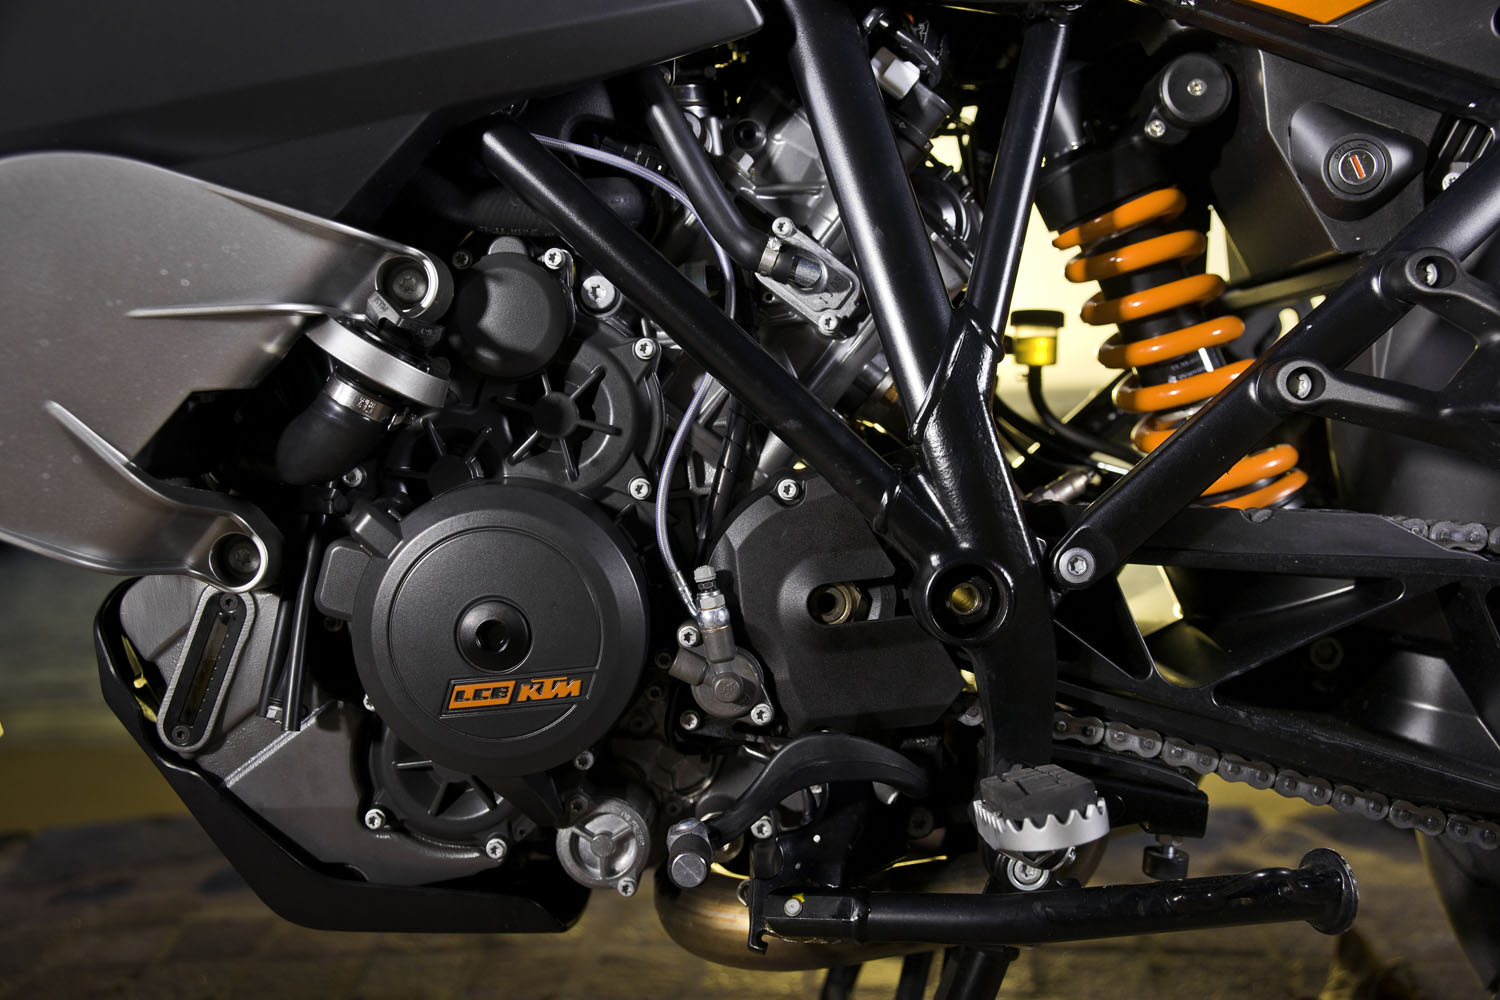 First Ride: KTM 1190 Adventure review